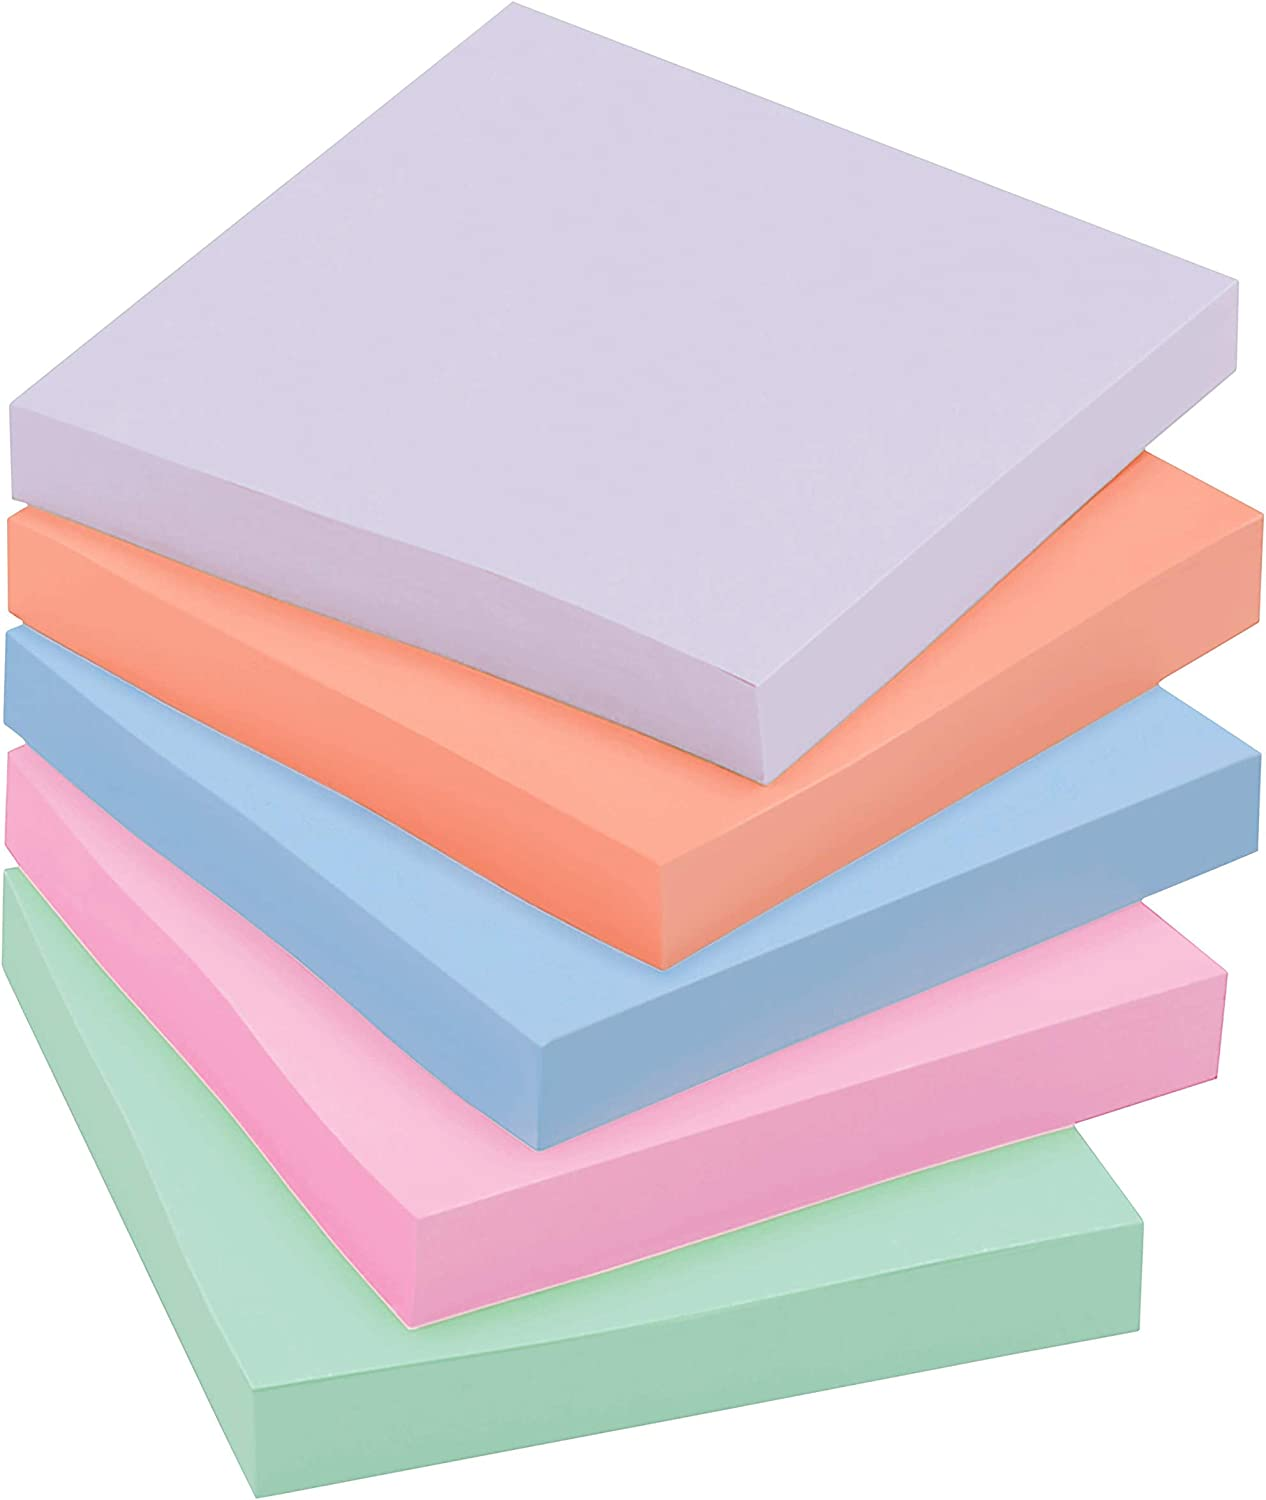 Sticky Recycled Notes Pastel Colors 3 in x 3 in 5 Pads Bali Collection 30/% Recycled Paper 2X The Sticking Power 654-5SSNRP - 1 Lavender, Apricot, Blue, Pink, Mint